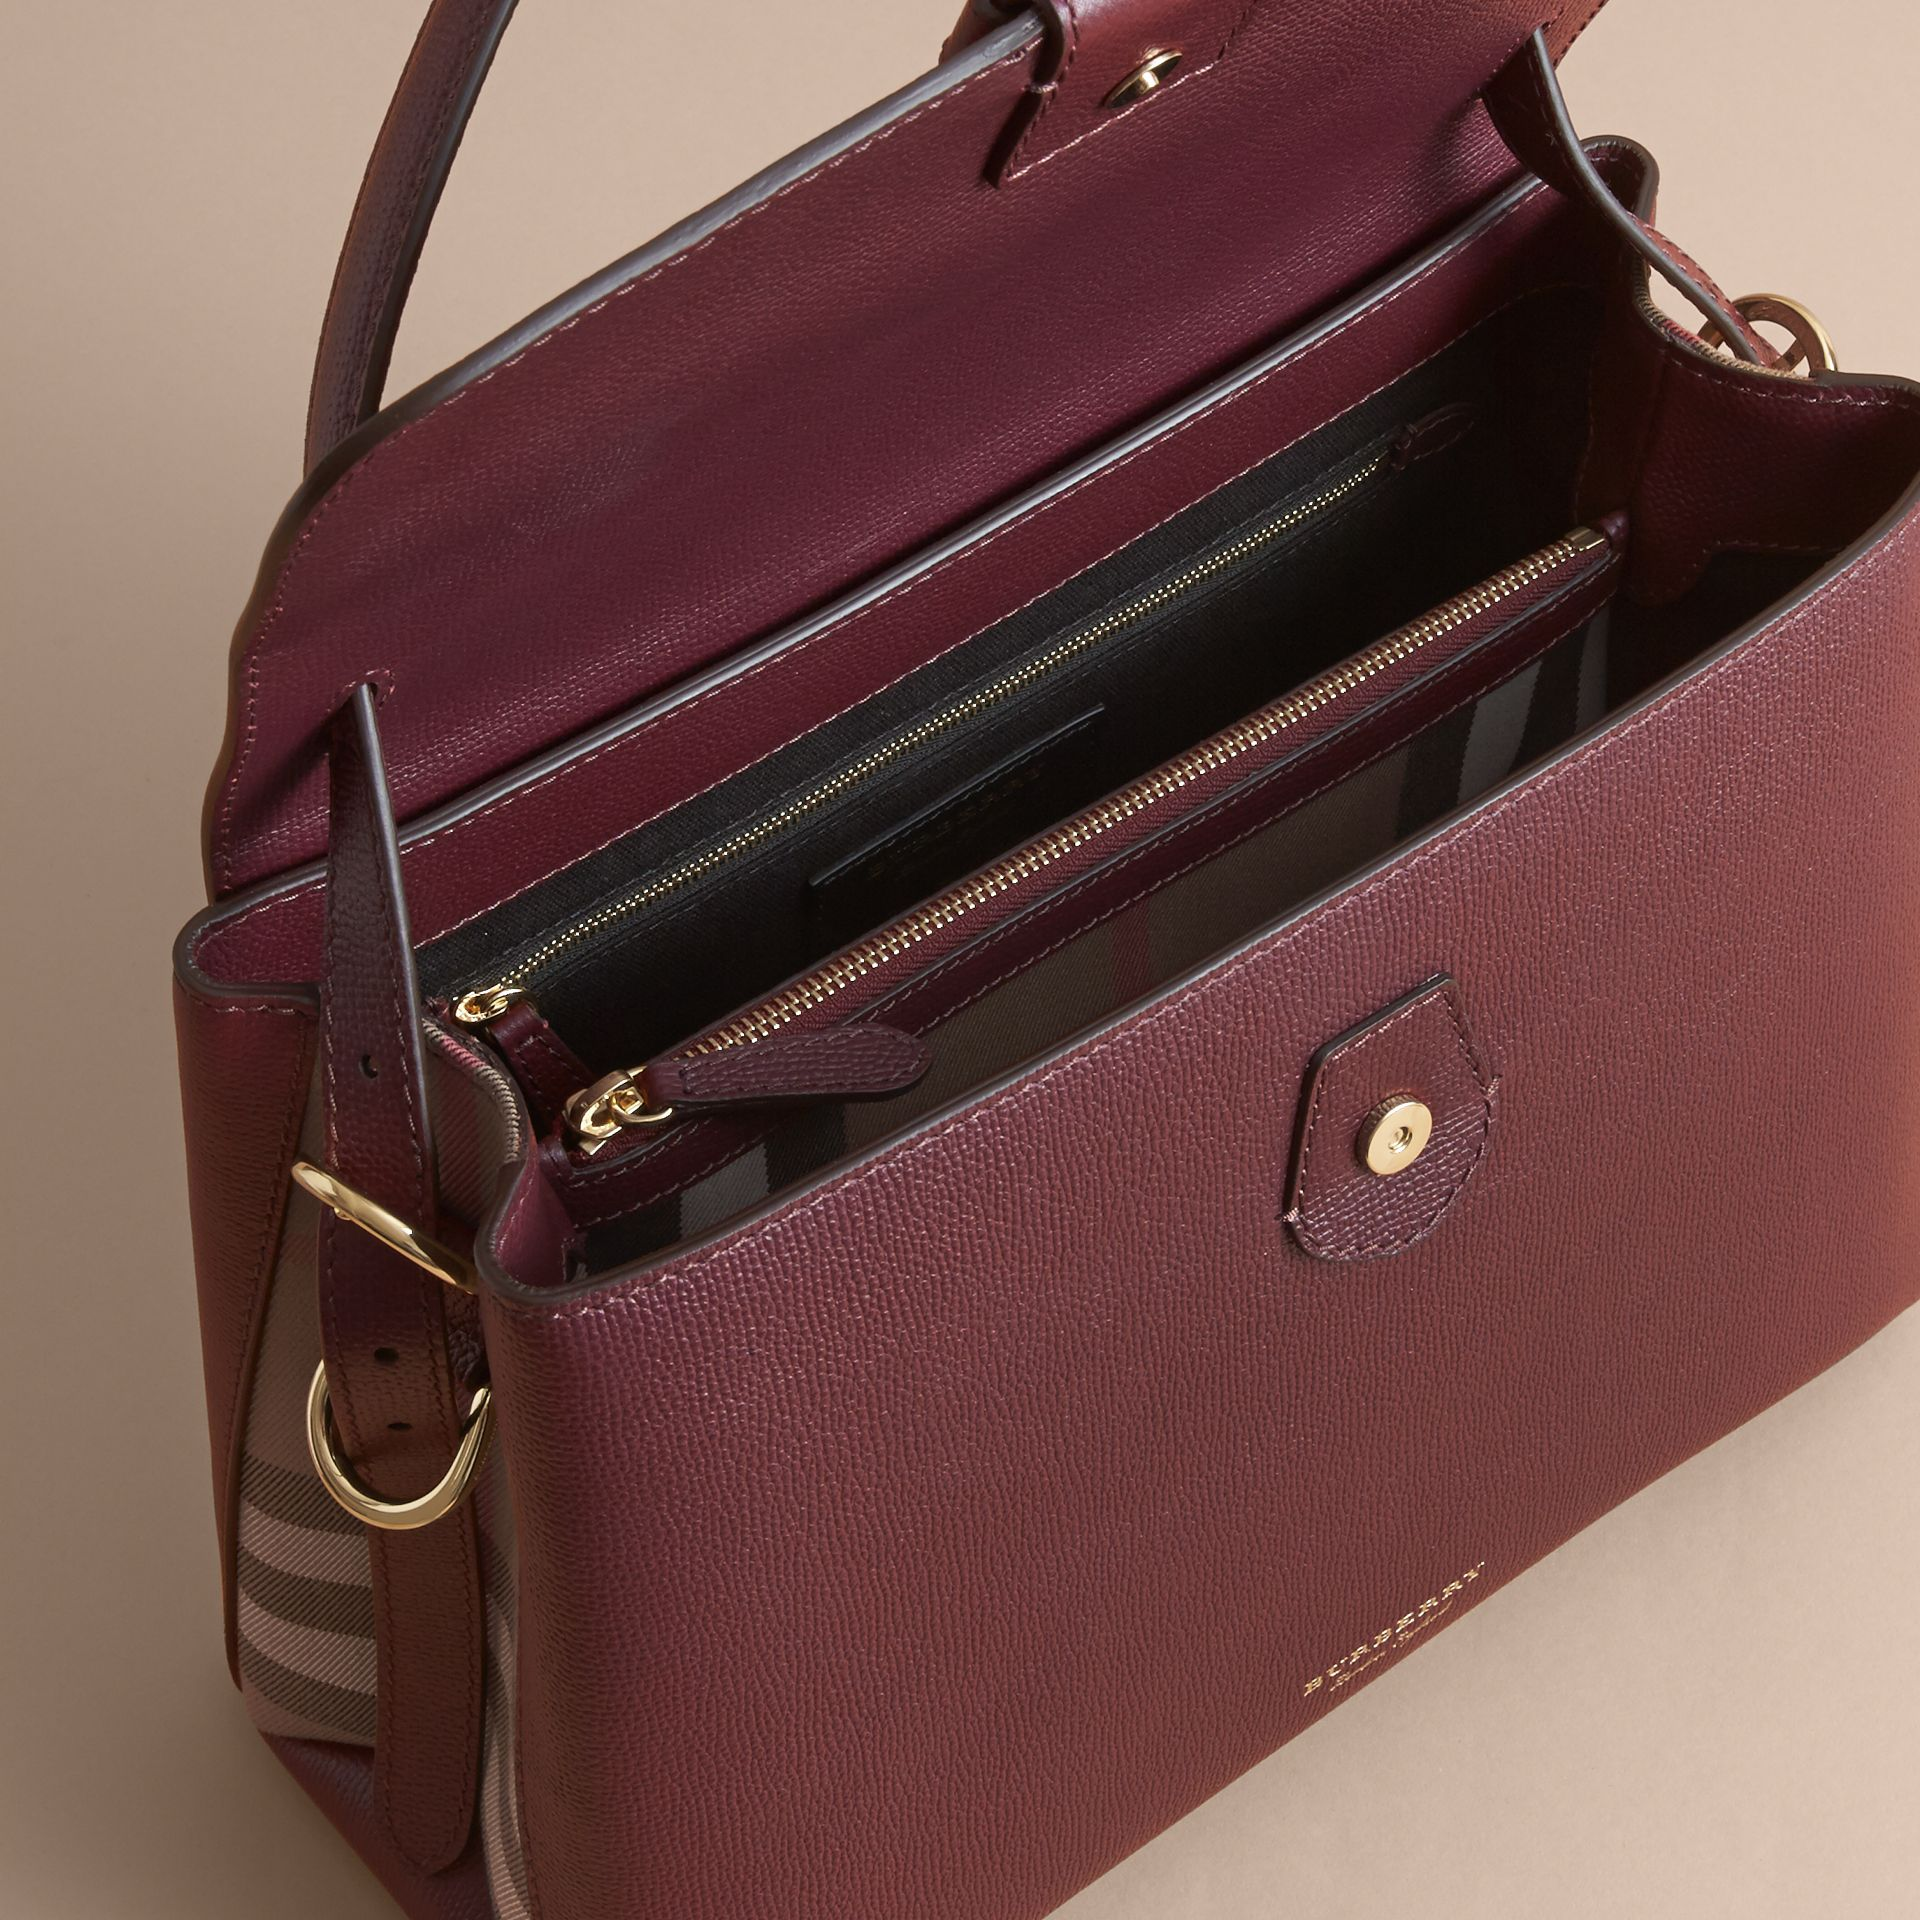 Medium Grainy Leather and House Check Tote Bag in Mahogany Red - Women | Burberry Singapore - gallery image 6